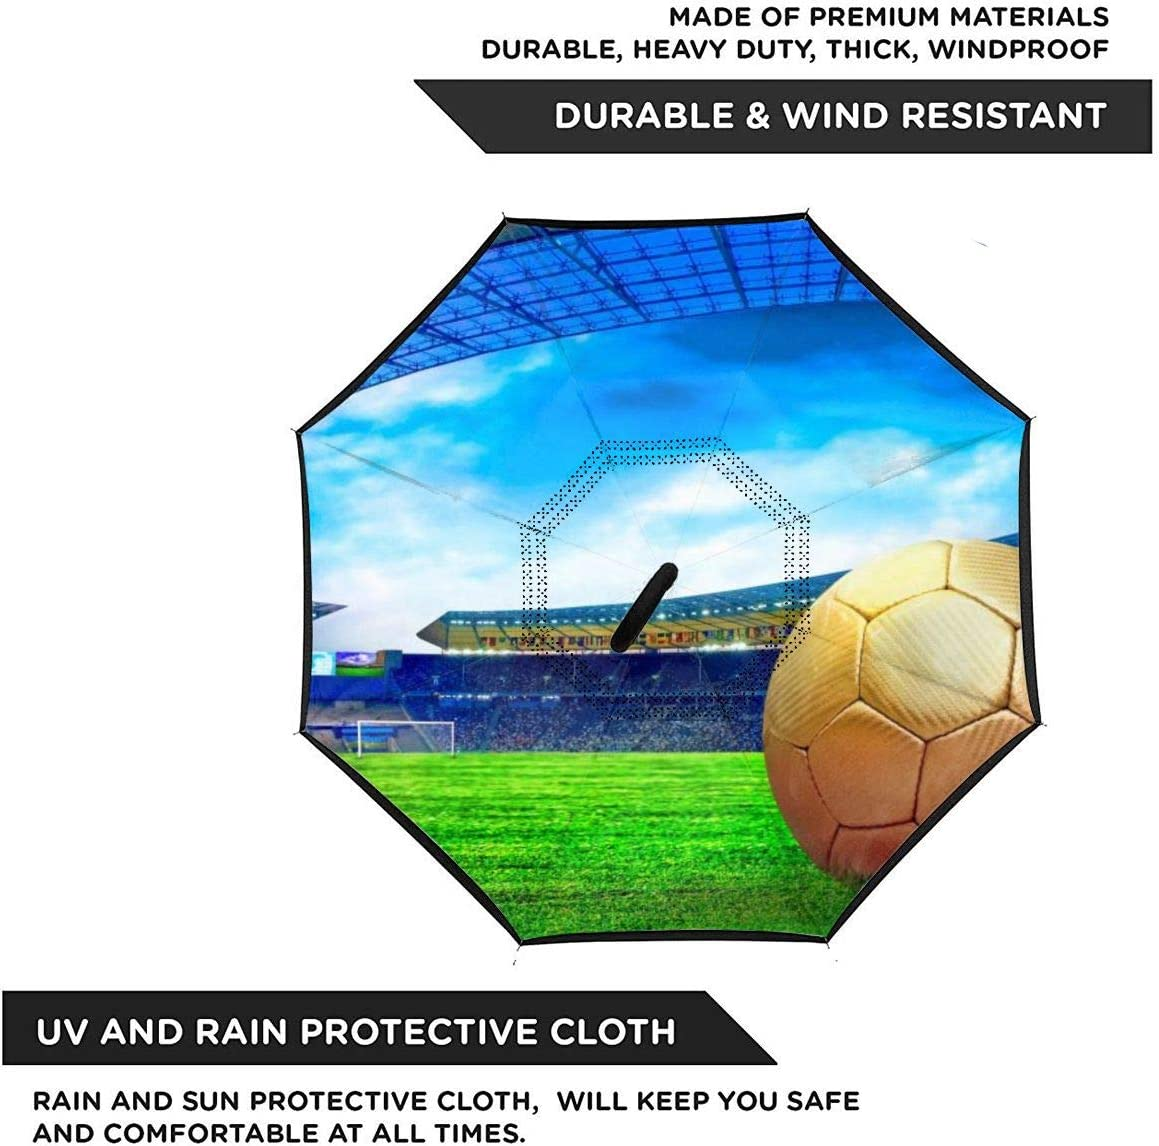 Folding Reverse Umbrella for Car Rain Outdoor Self Stand Upside Down with C-Shaped Handle PYFXSALA Football /& Stadium Wallpapers Windproof Inverted Umbrella Double Layer UV Protection